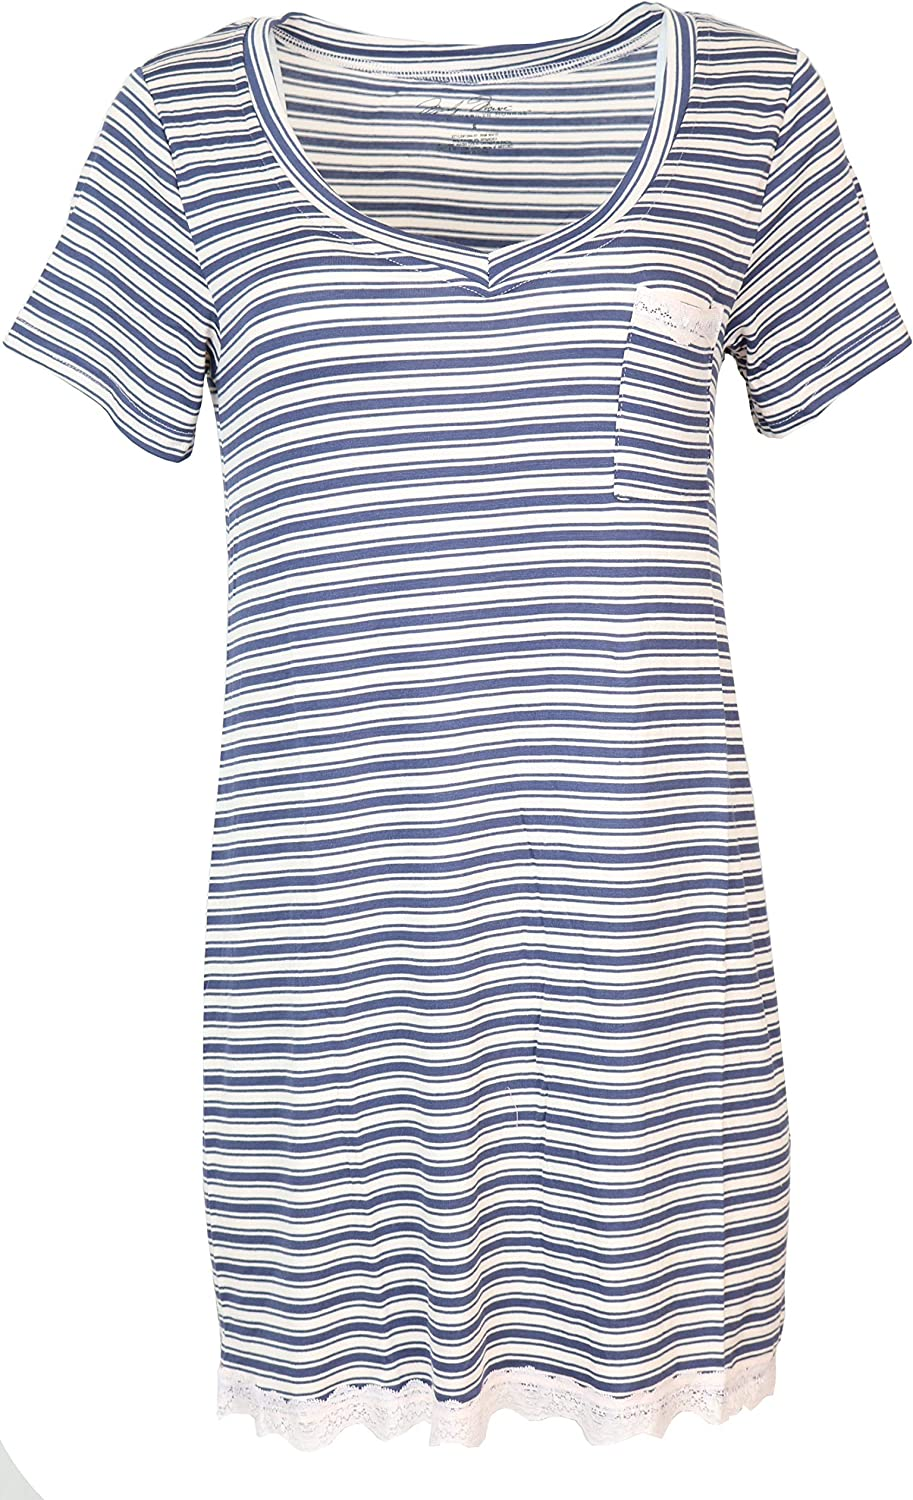 Marilyn Monroe Intimates セール特別価格 [ギフト/プレゼント/ご褒美] Women's Short Sleeve Nightgown with Poc